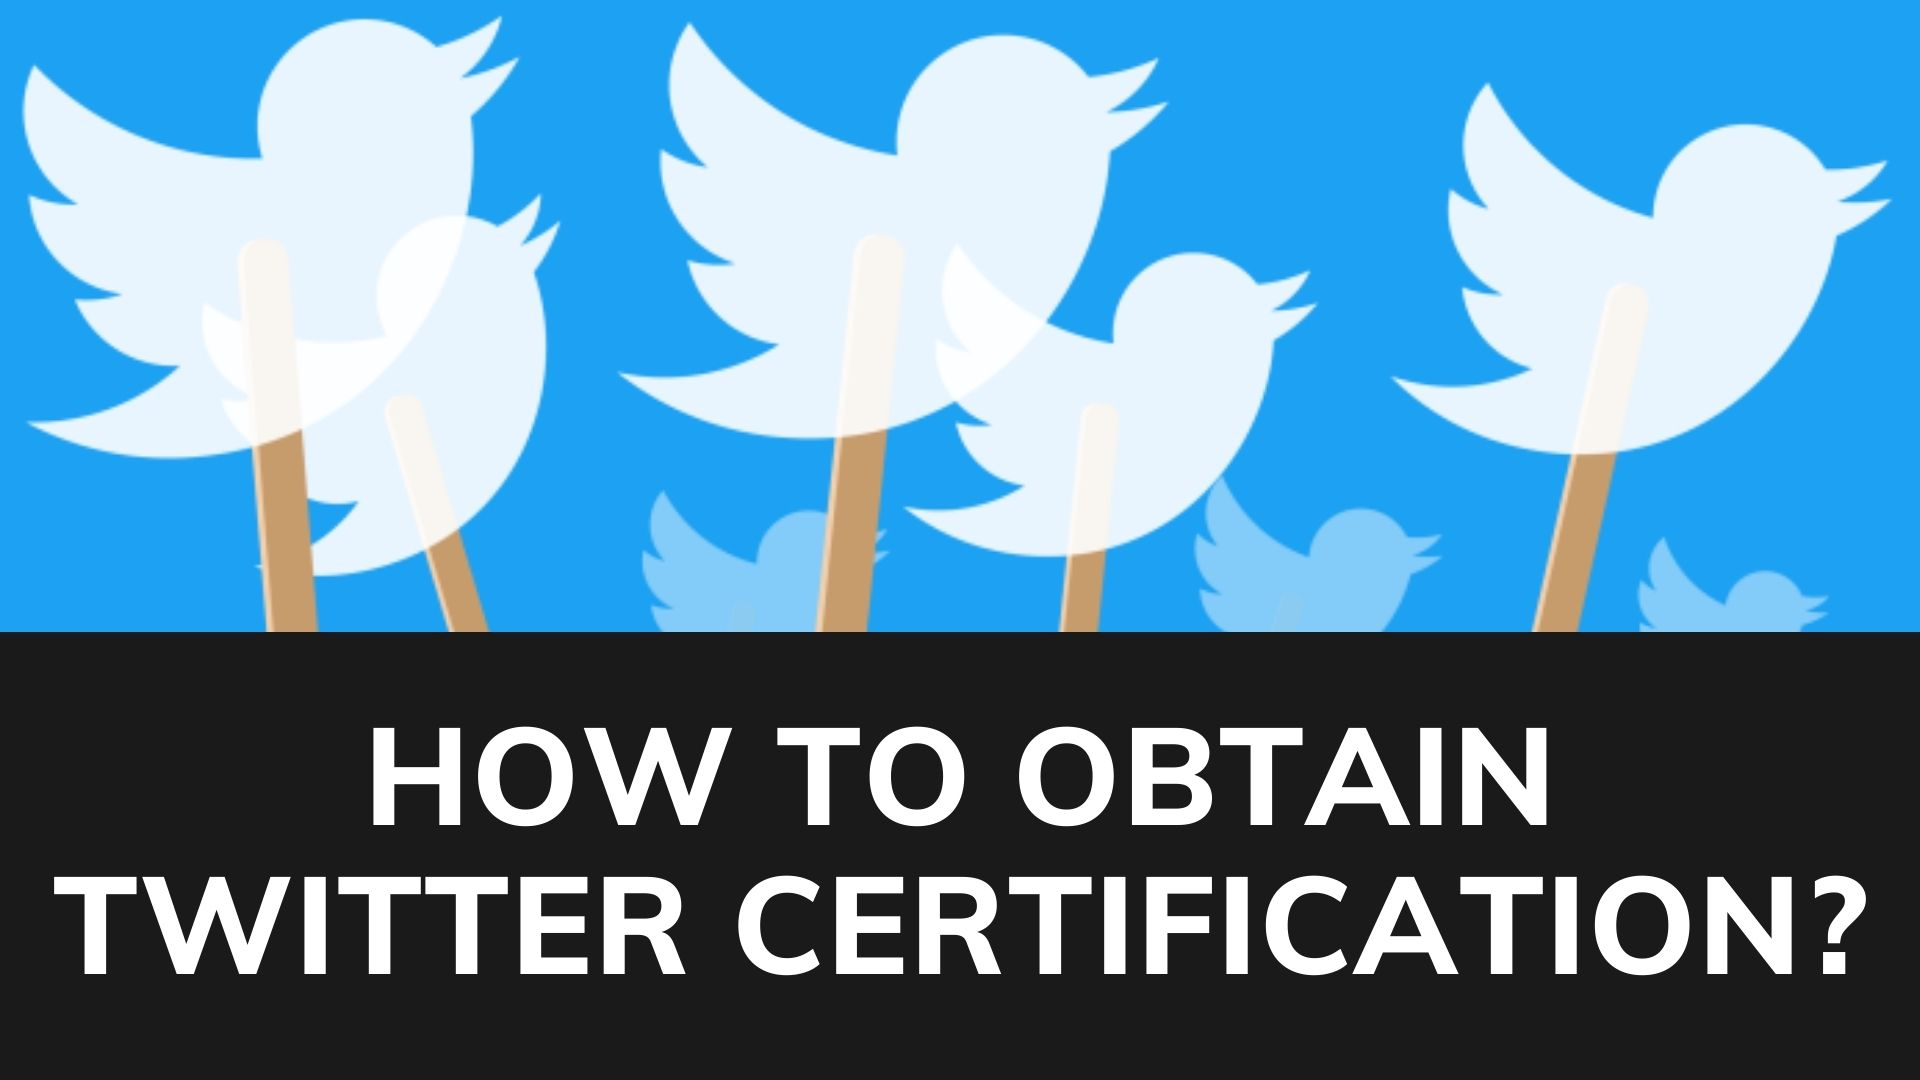 How to obtain twitter certification?